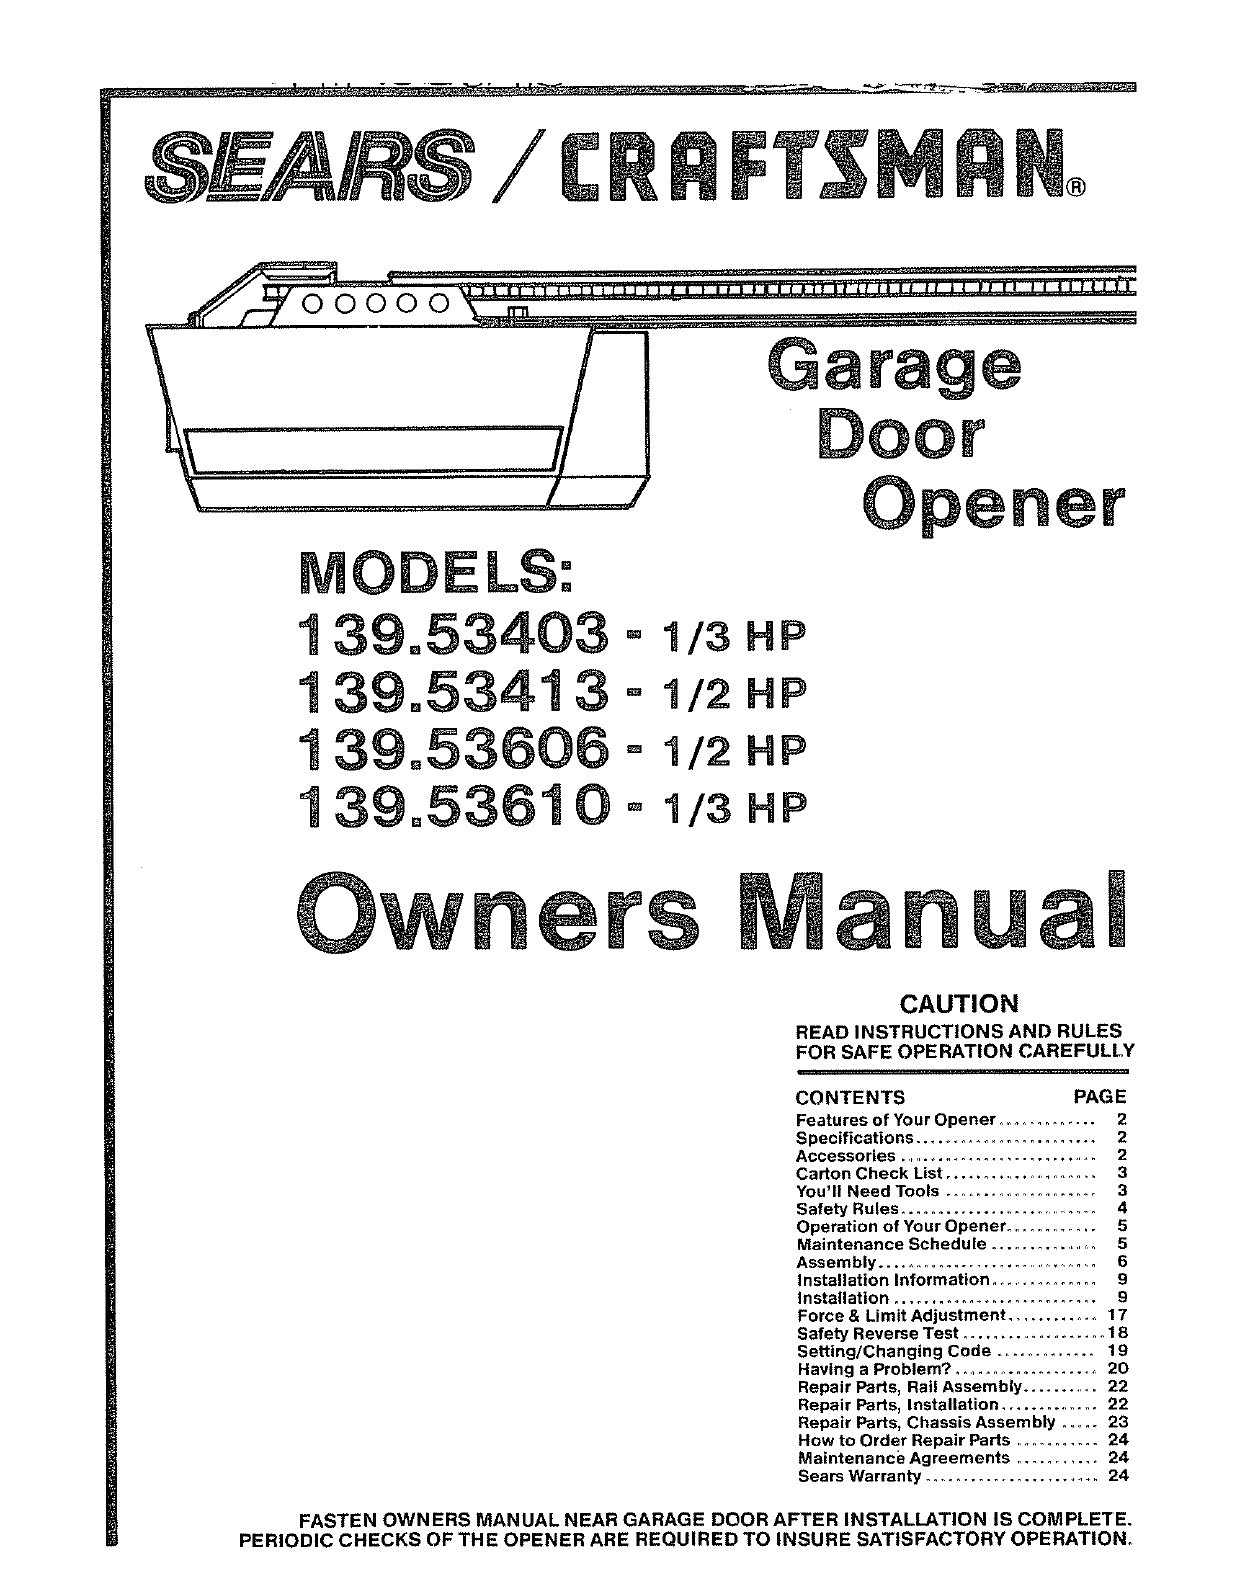 Craftsman Garage Door Opener Parts Diagram Stanley Garage Door Craftsman Garage Door Sensor Wiring Diagram 2018 Of Craftsman Garage Door Opener Parts Diagram Amazing Craftsman Garage Door Parts Ideas